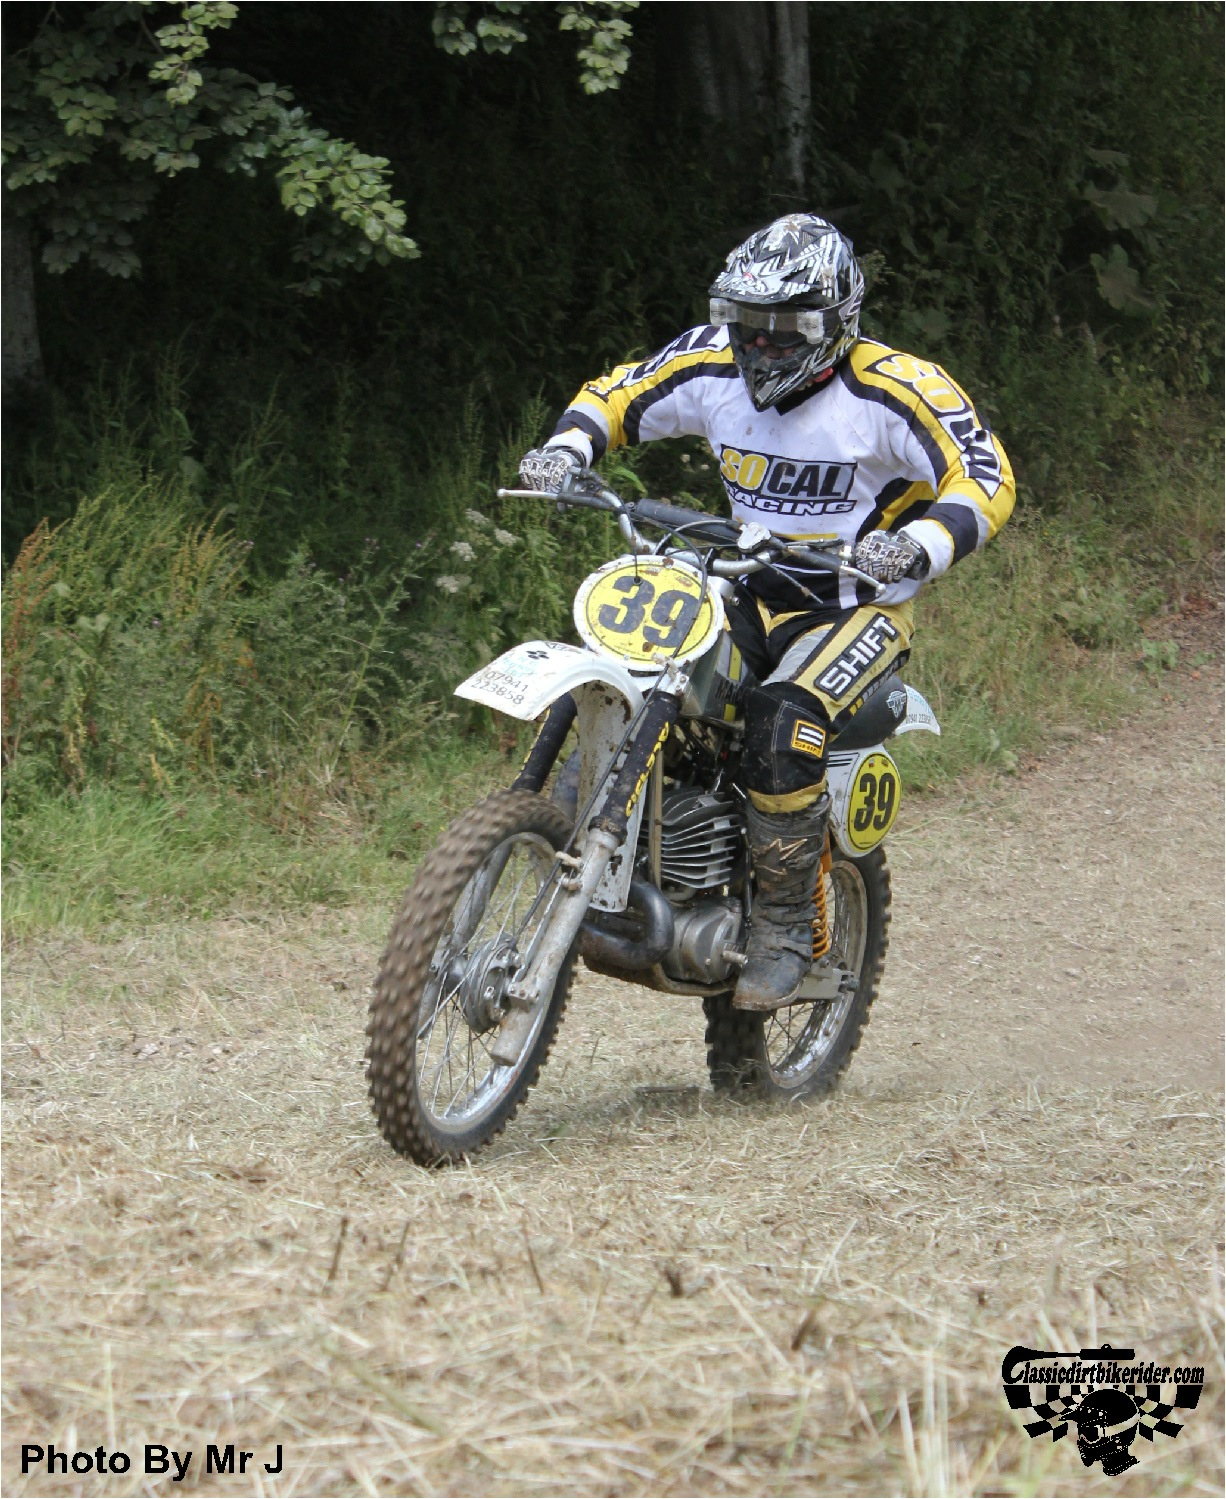 king of the castle 2015 photos Farleigh Castle twinshock motocross classicdirtbikerider.com 49